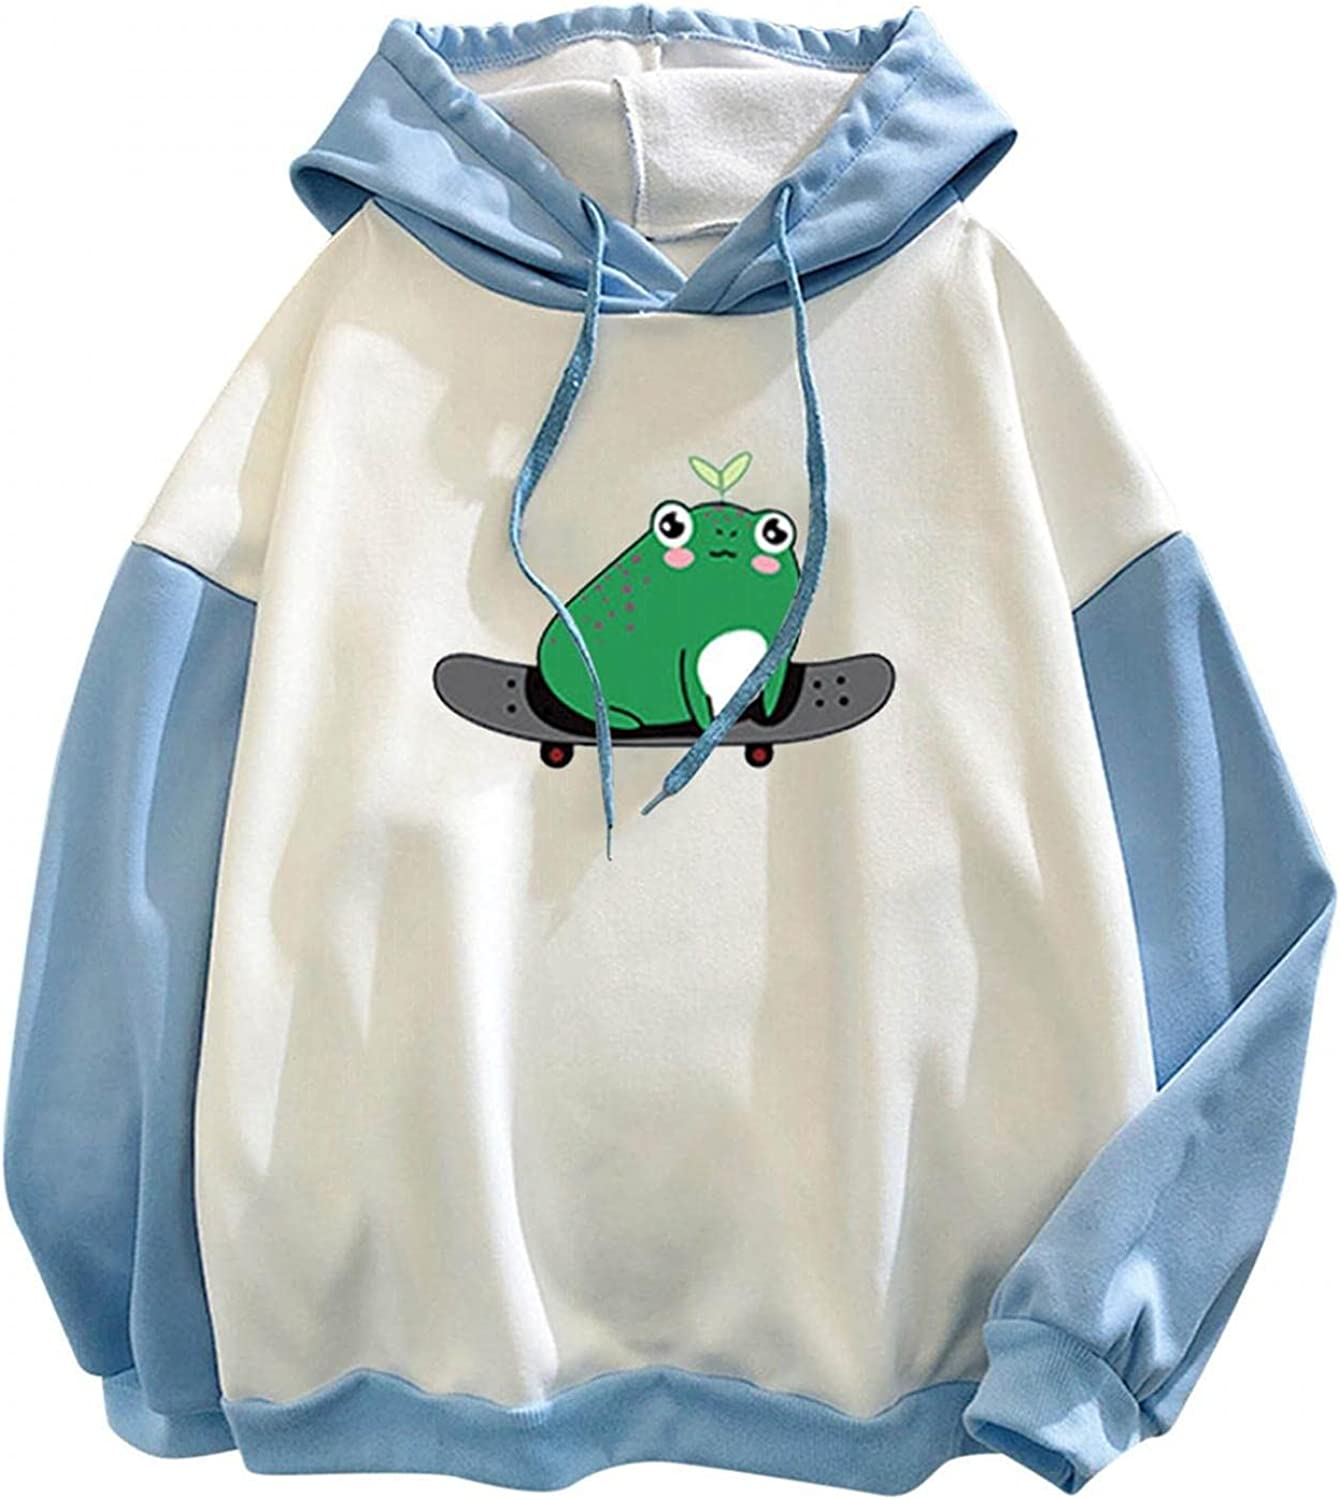 Haheyrte Hoodies for Womens Cute Frog Print Pocket Loose Long Sleeve Hooded Casual Sweatshirts Pullover Tops Shirts